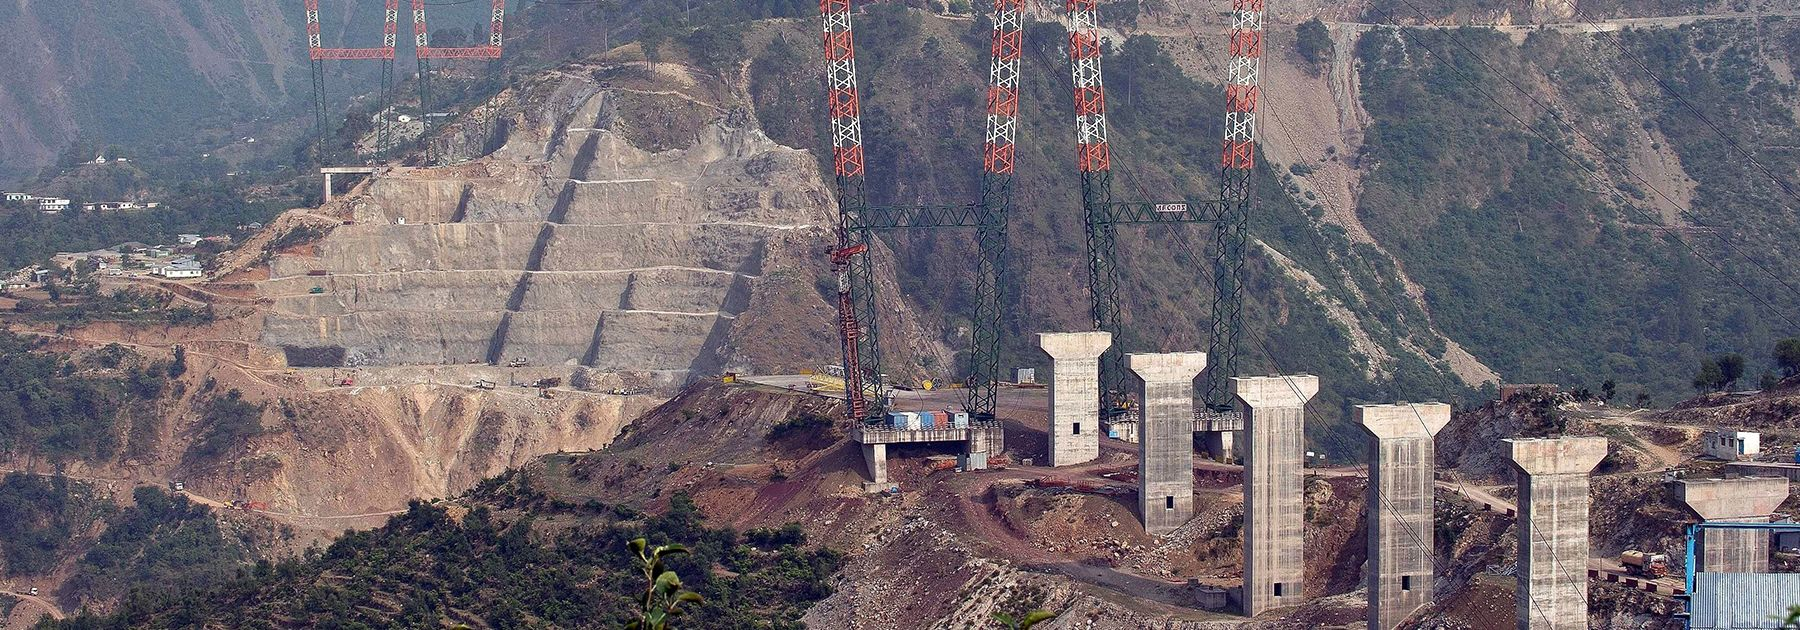 The site of the under-construction world's highest railway bridge over the Chenab river in Kauri. (PRAKASH SINGH/AFP/Getty Images)